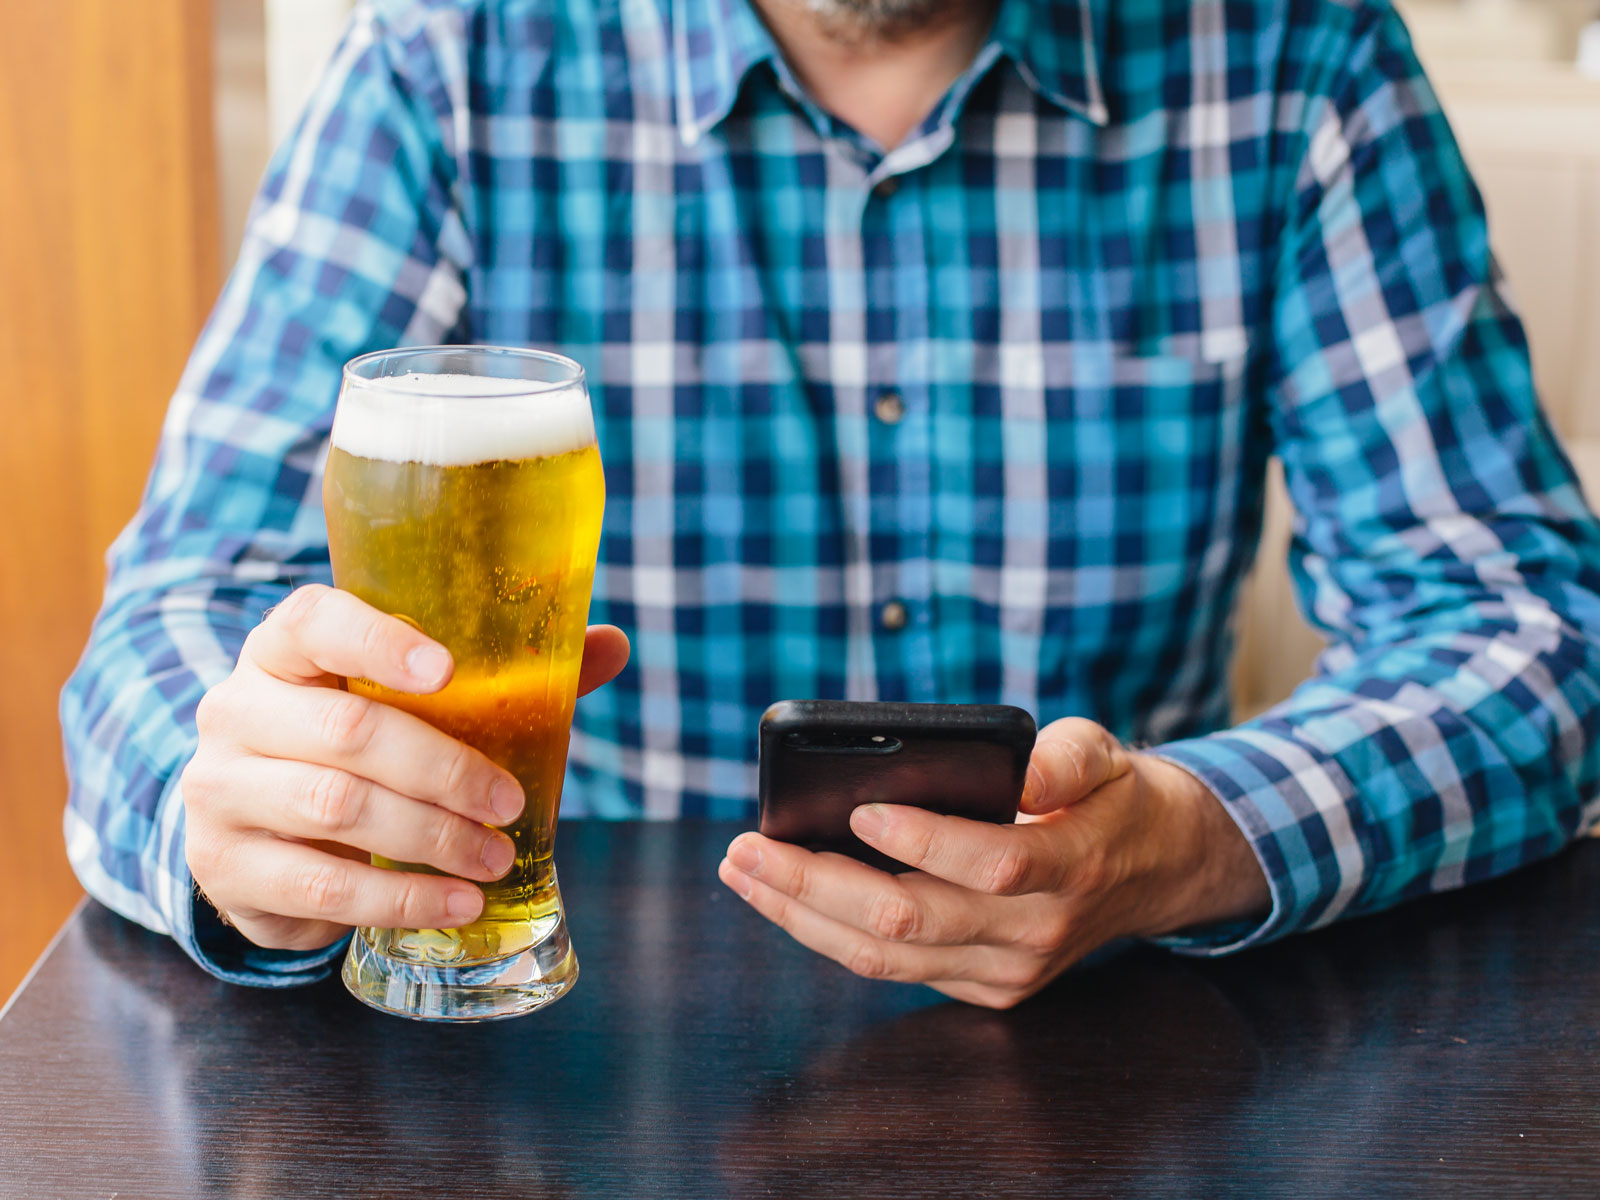 Are Untappd Users More Likely to Check In 'Cool' Beer?